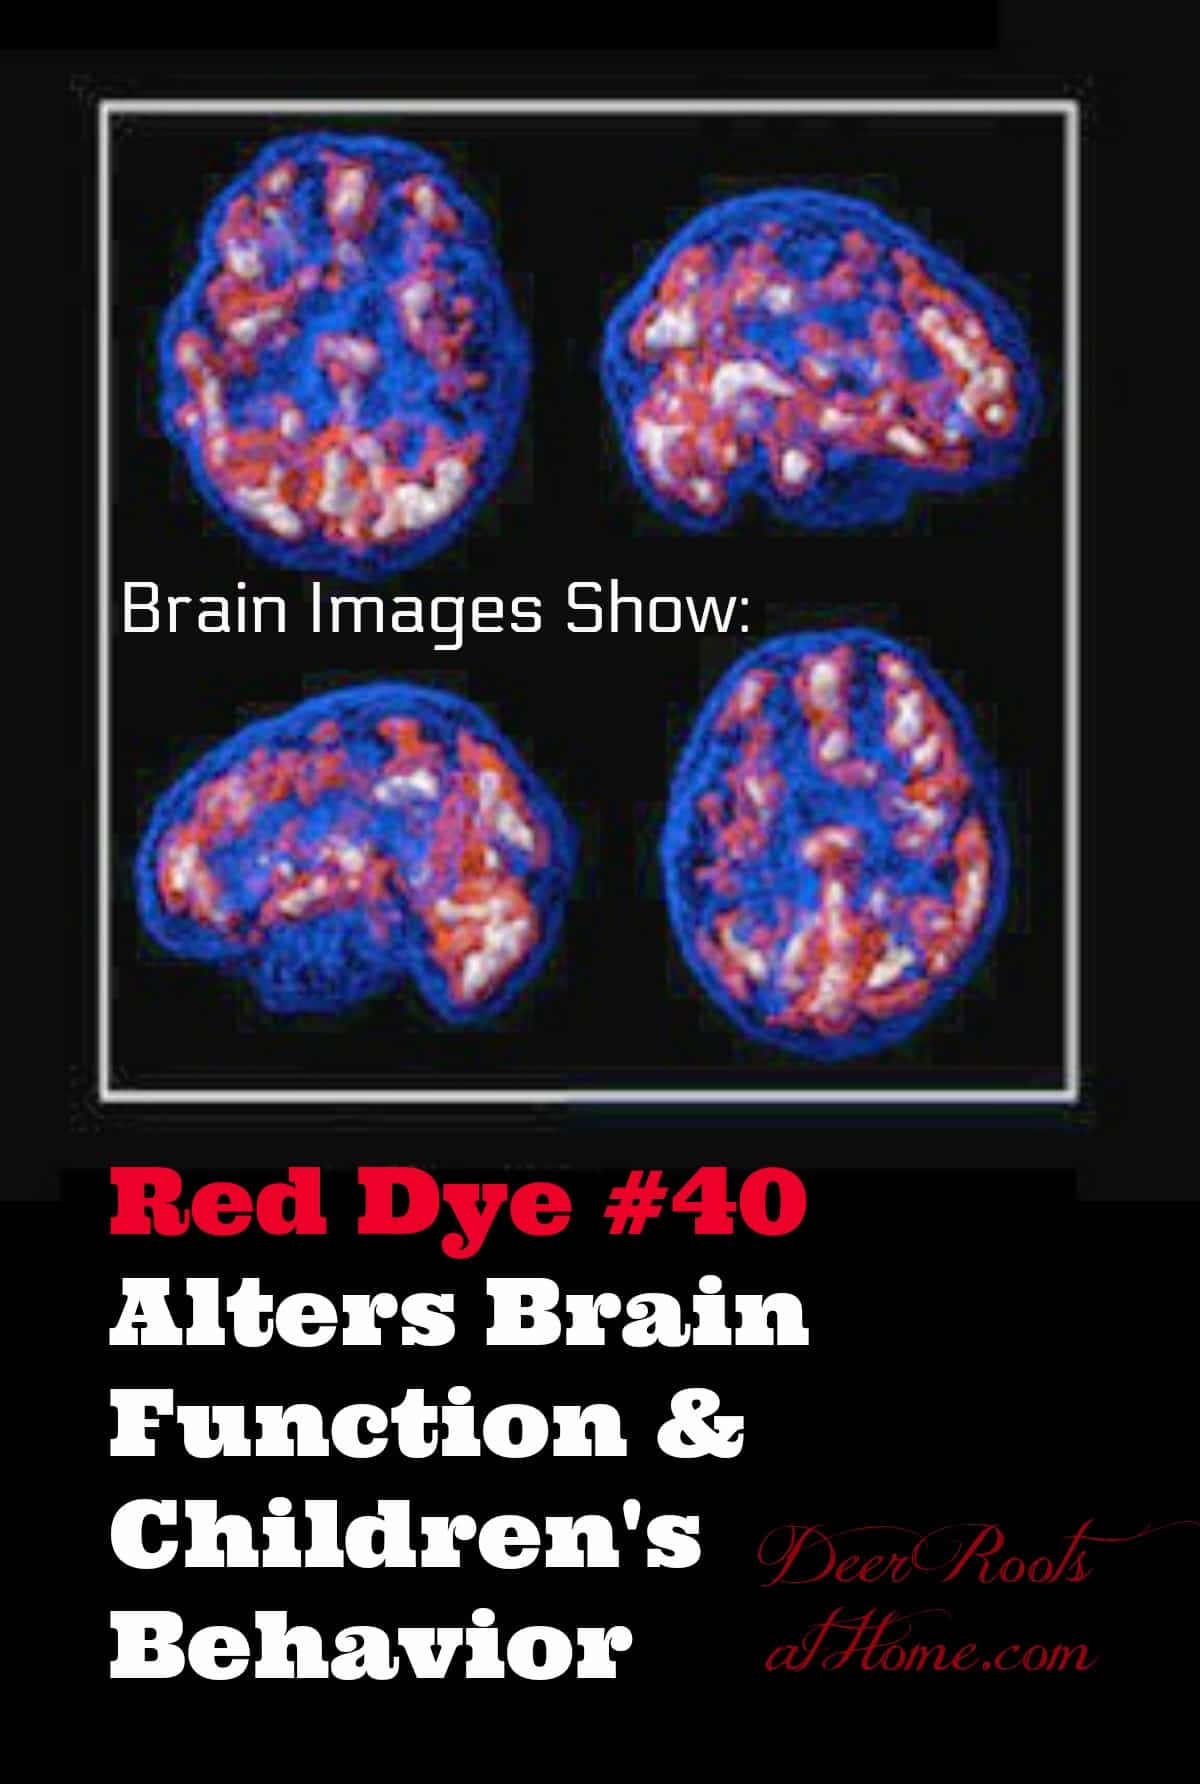 Red Dye #40 Can Make Non-ADD Kids Hyperactive & Alter Brain Function